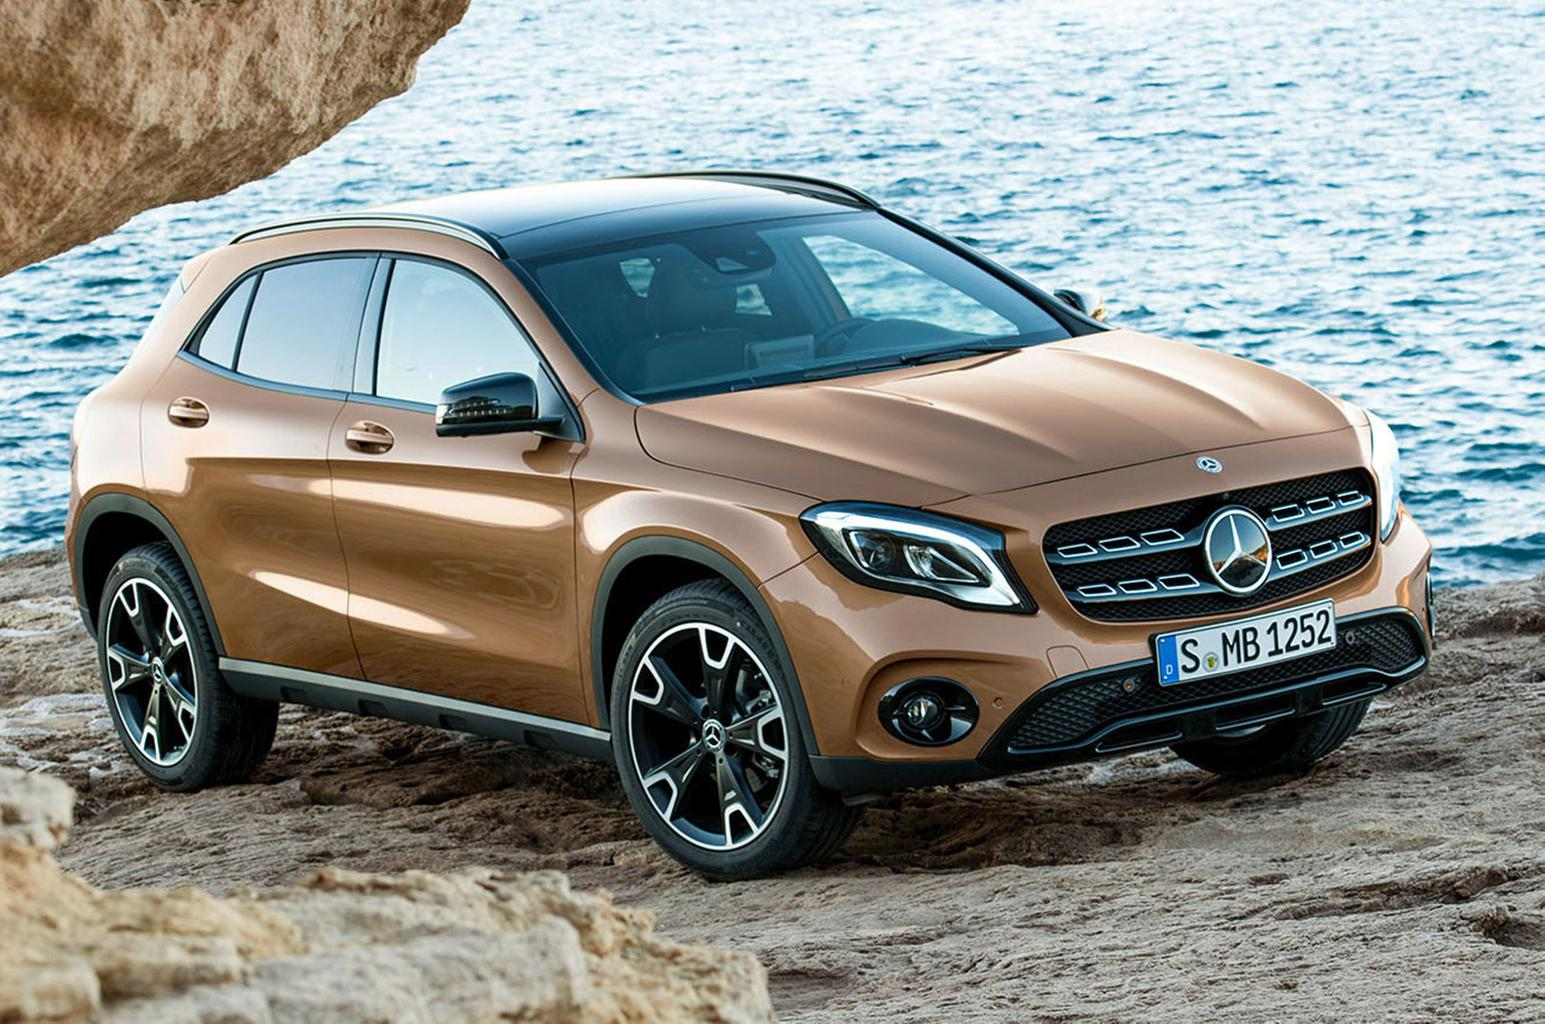 Facelifted Mercedes GLA to go on sale in April